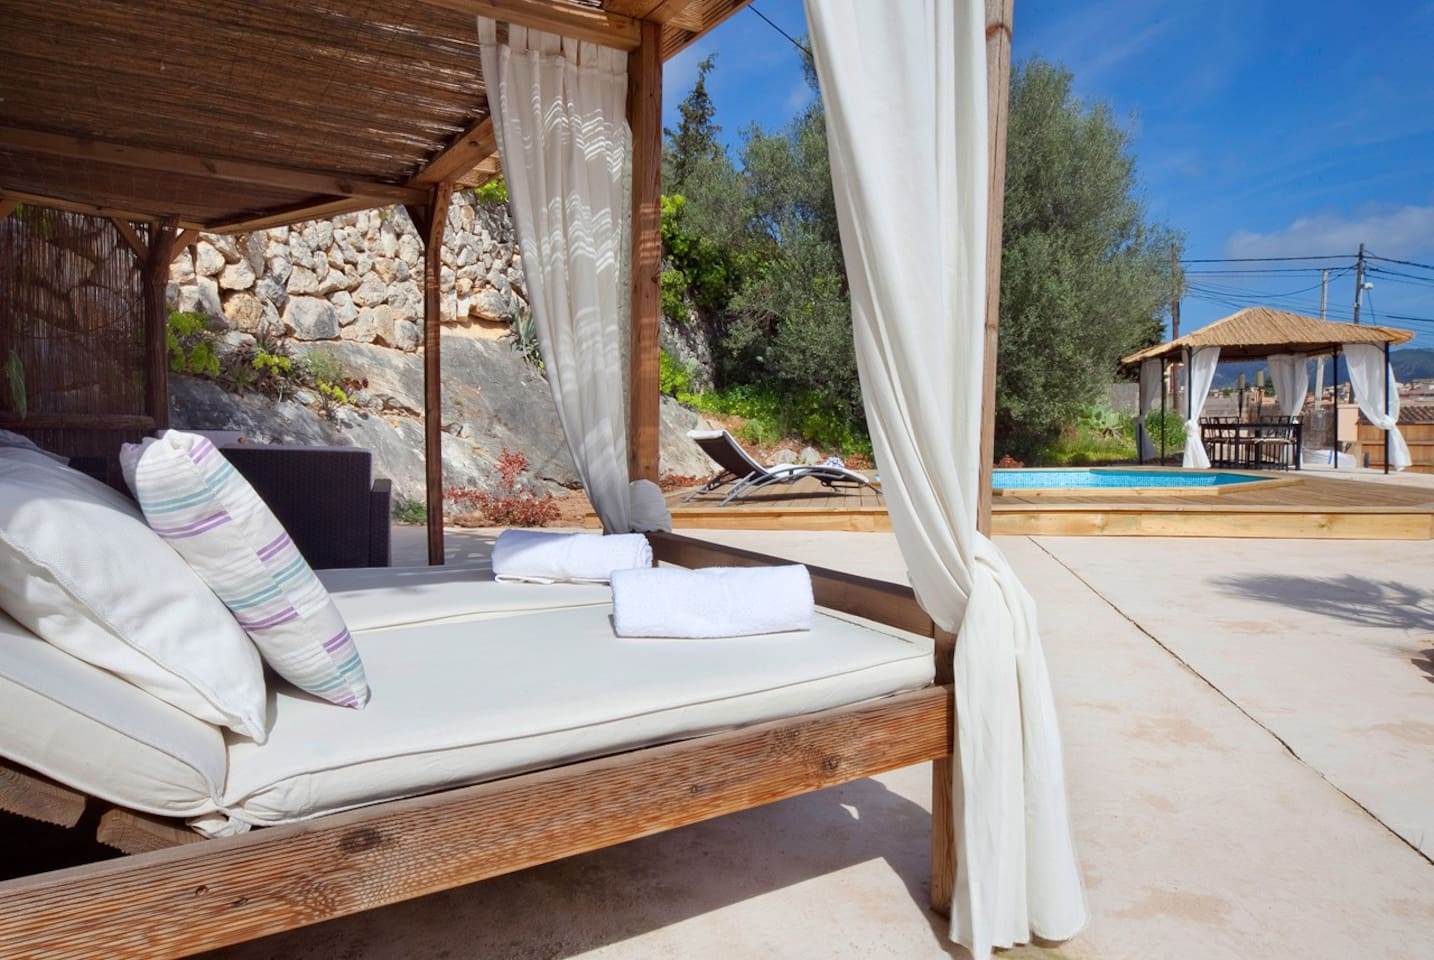 Relax on our day bed.